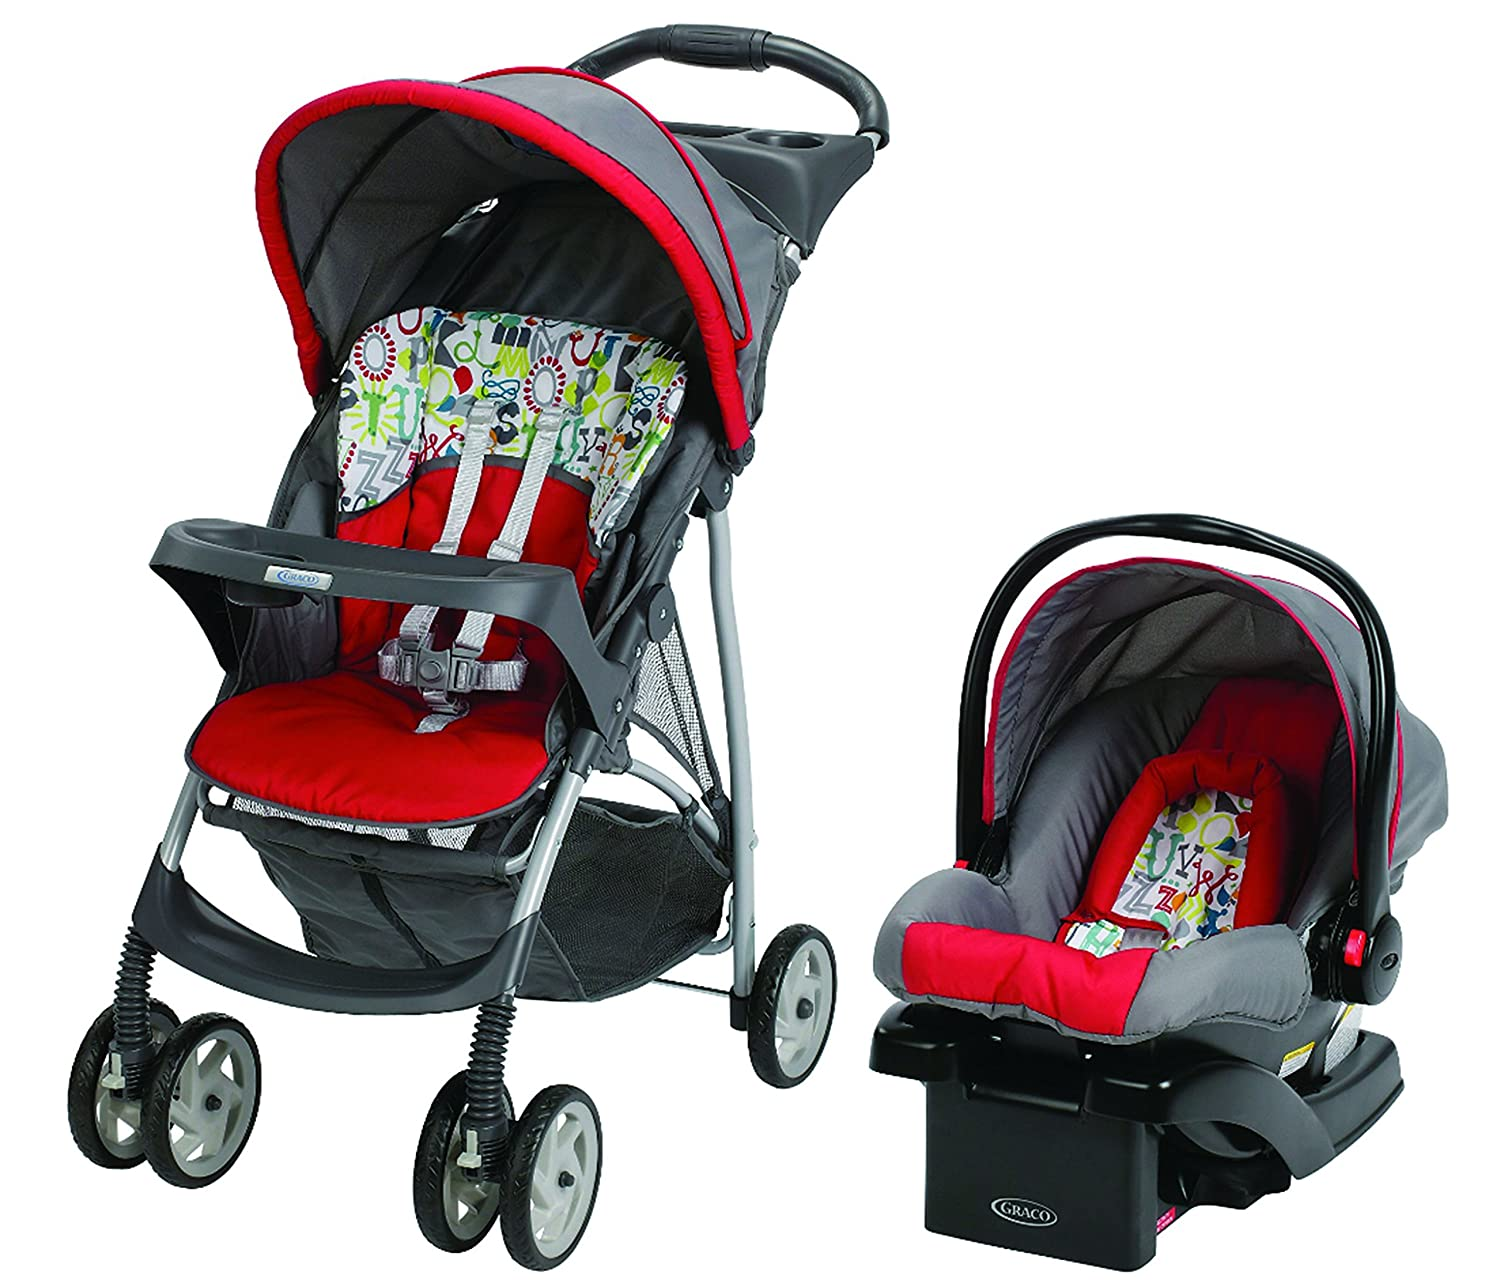 LiteRider Click Connect travel system (Typo)